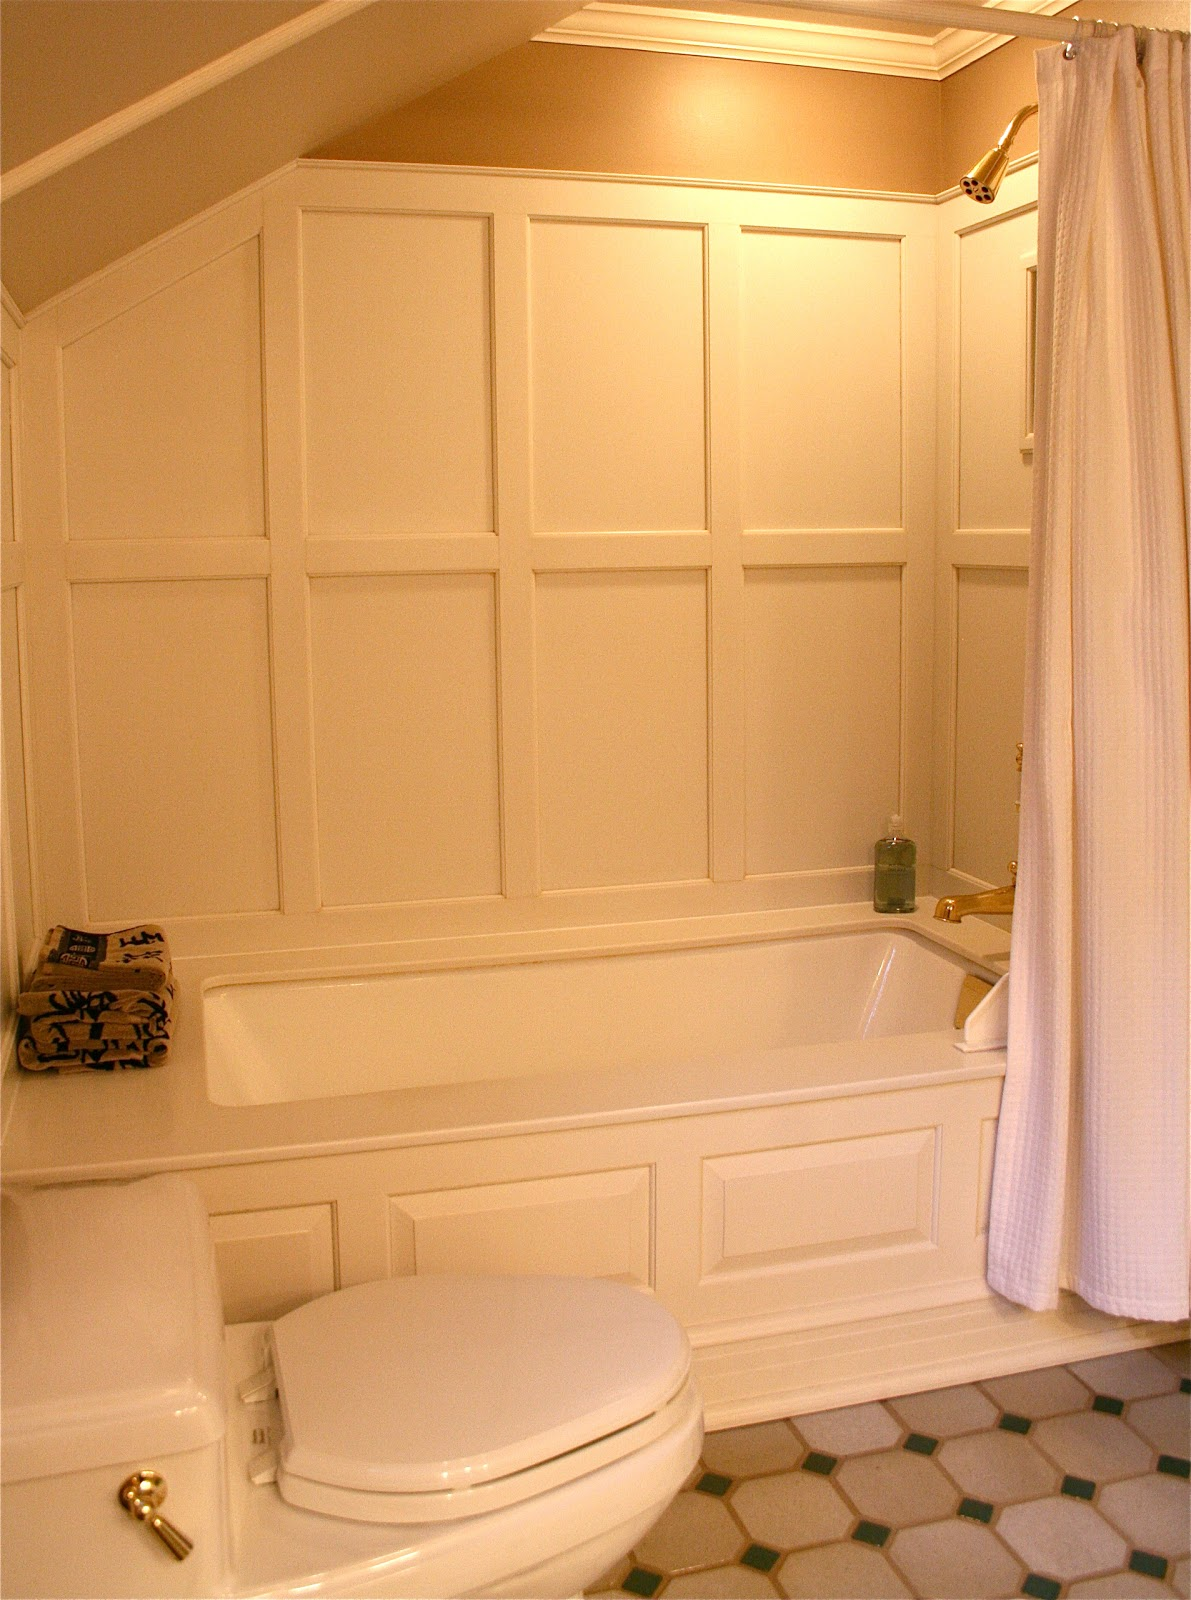 Antiqueaholics bathtub surround paneled with corian - Shower wall material ideas ...